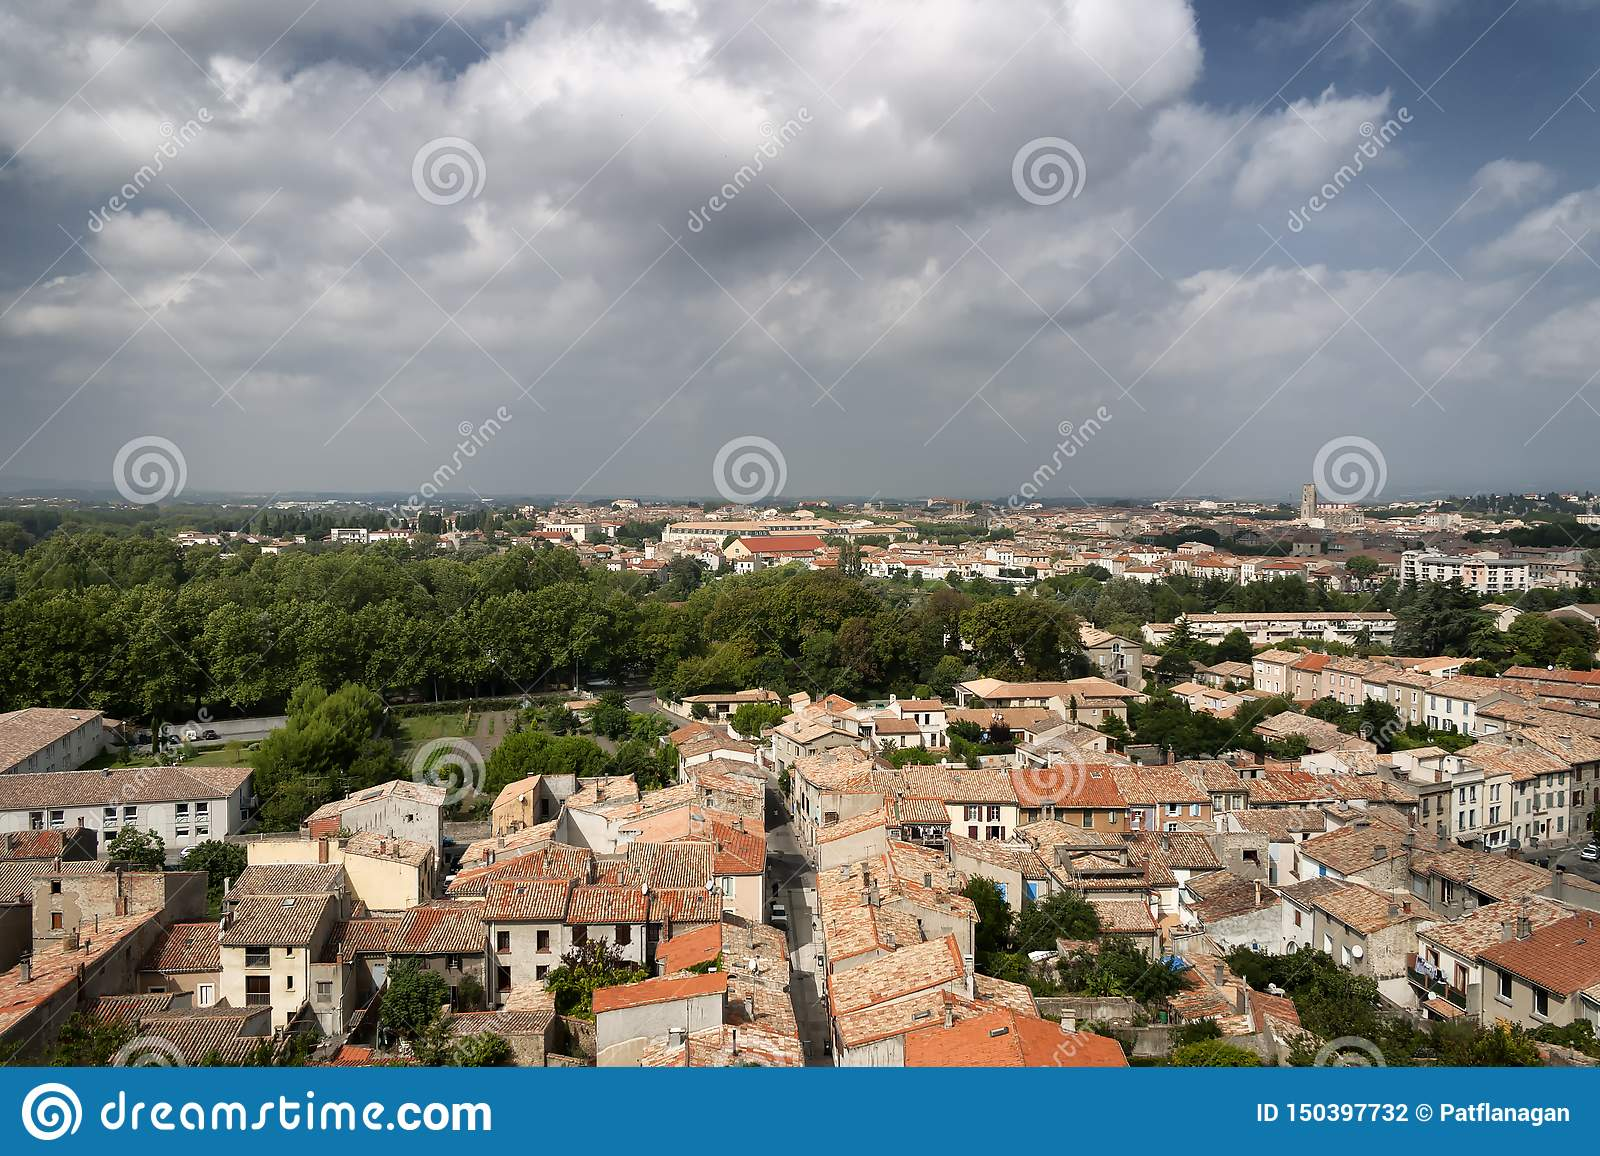 A view of rooftops over a French city